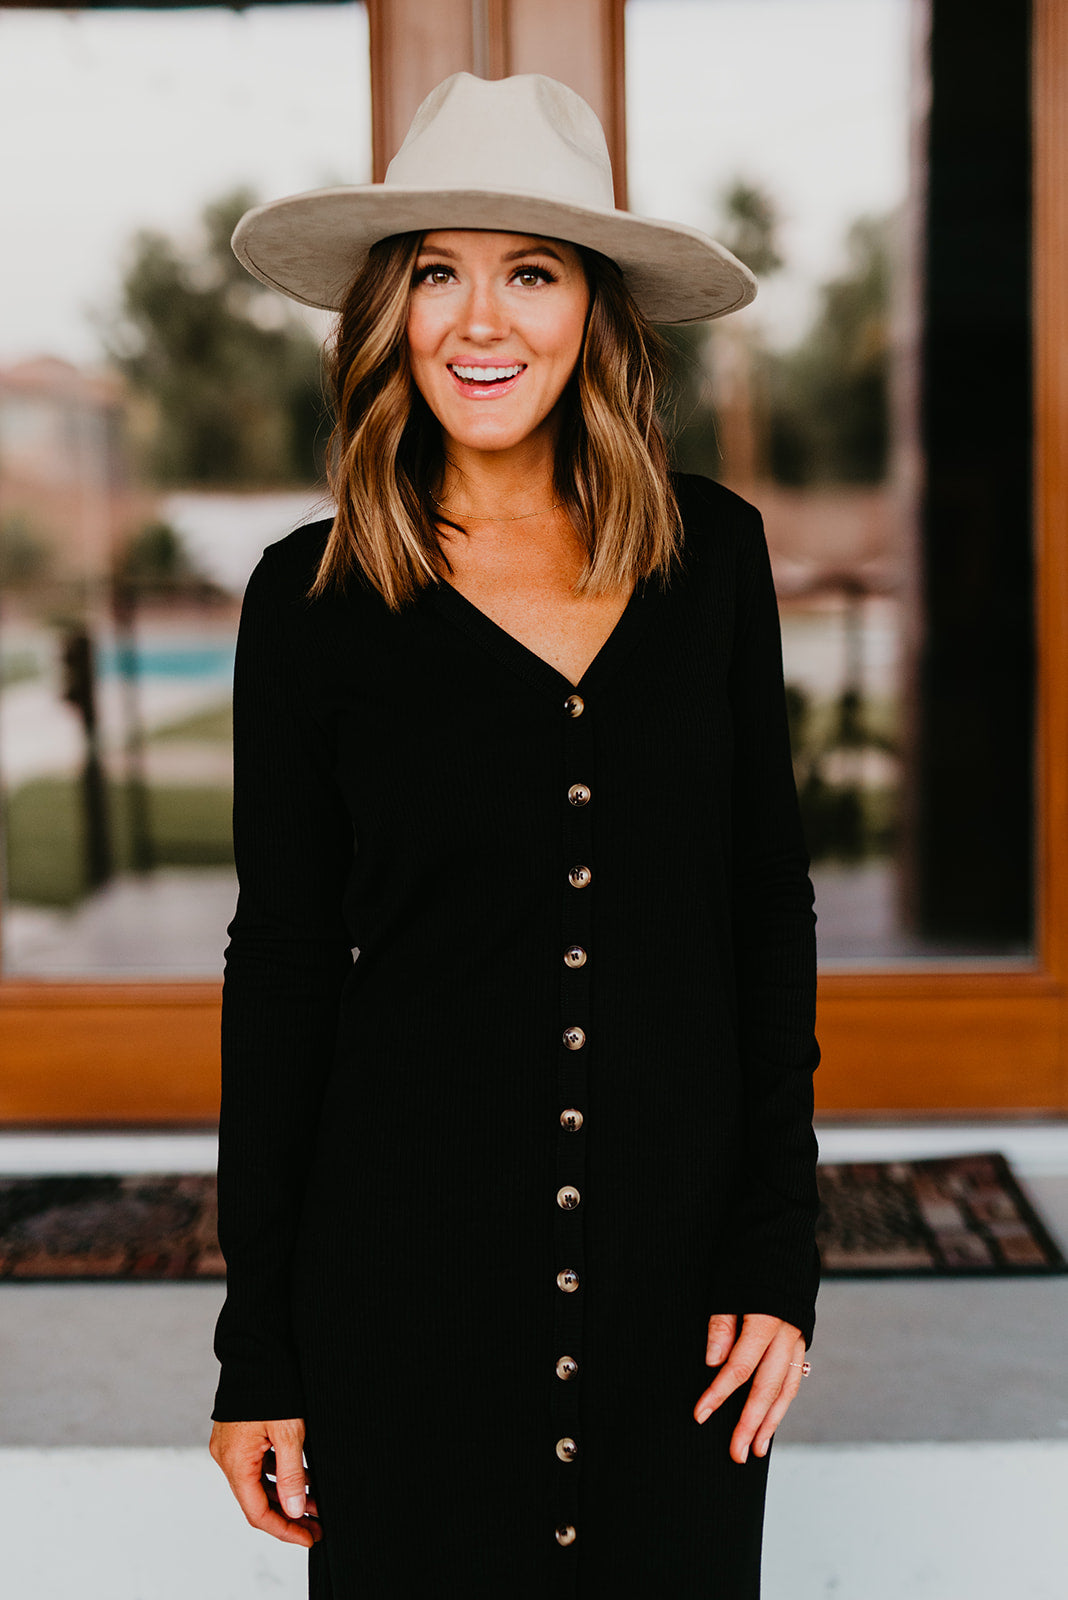 THE BRIANNE BUTTON DOWN LONG SLEEVE MAXI DRESS IN BLACK